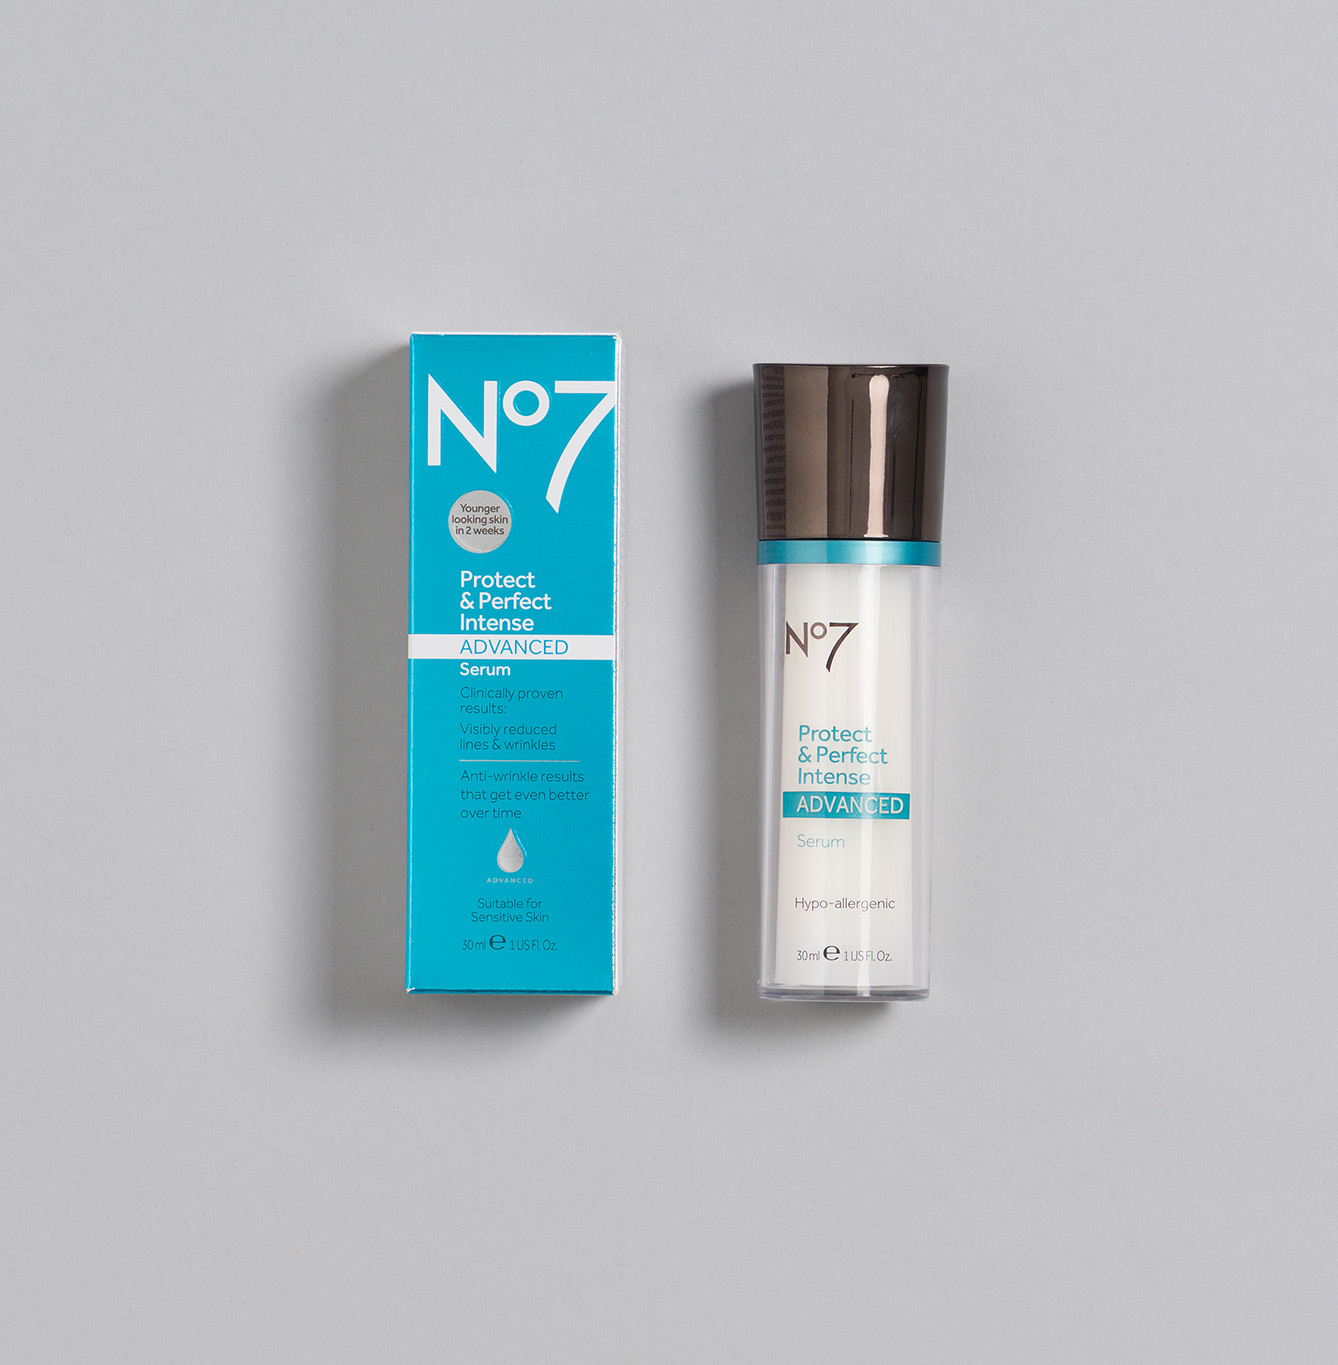 No7_P&P_Packaging_02